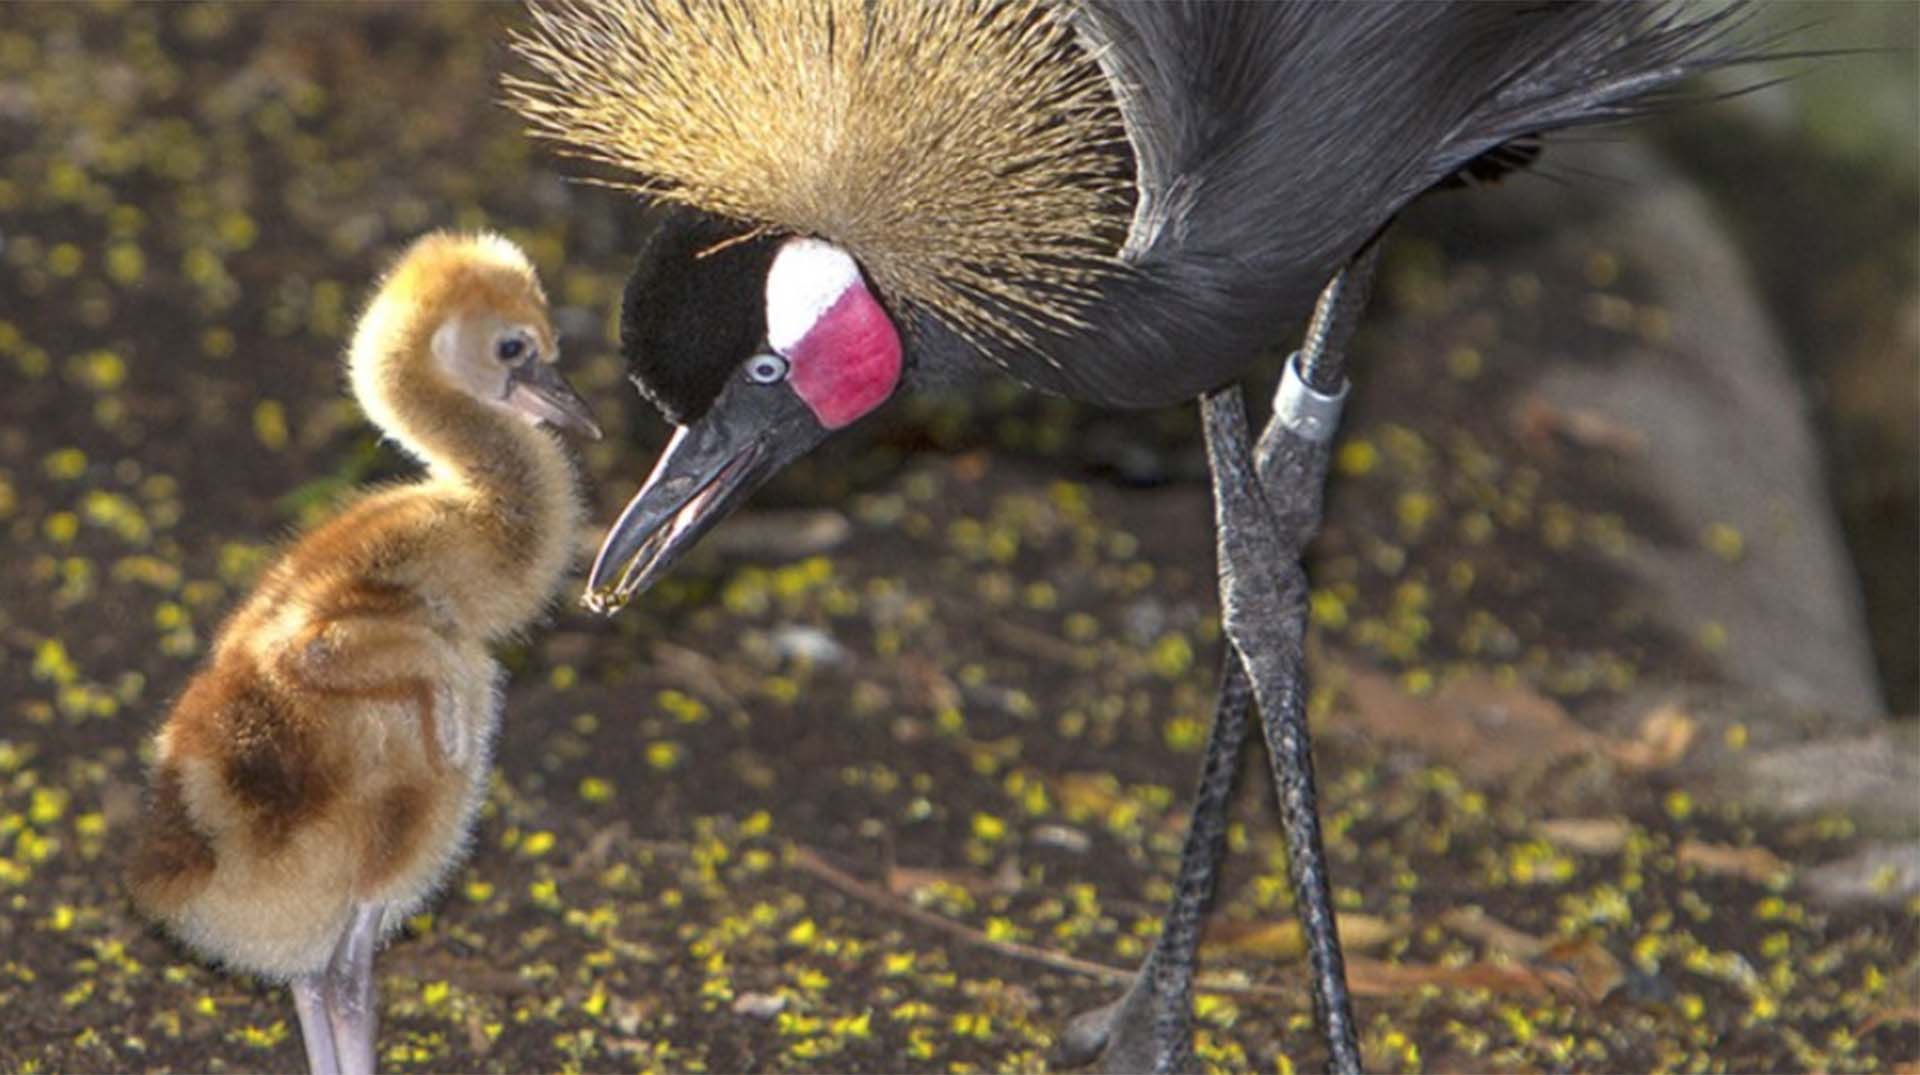 West African crowned crane adult and East African crowned crane chick